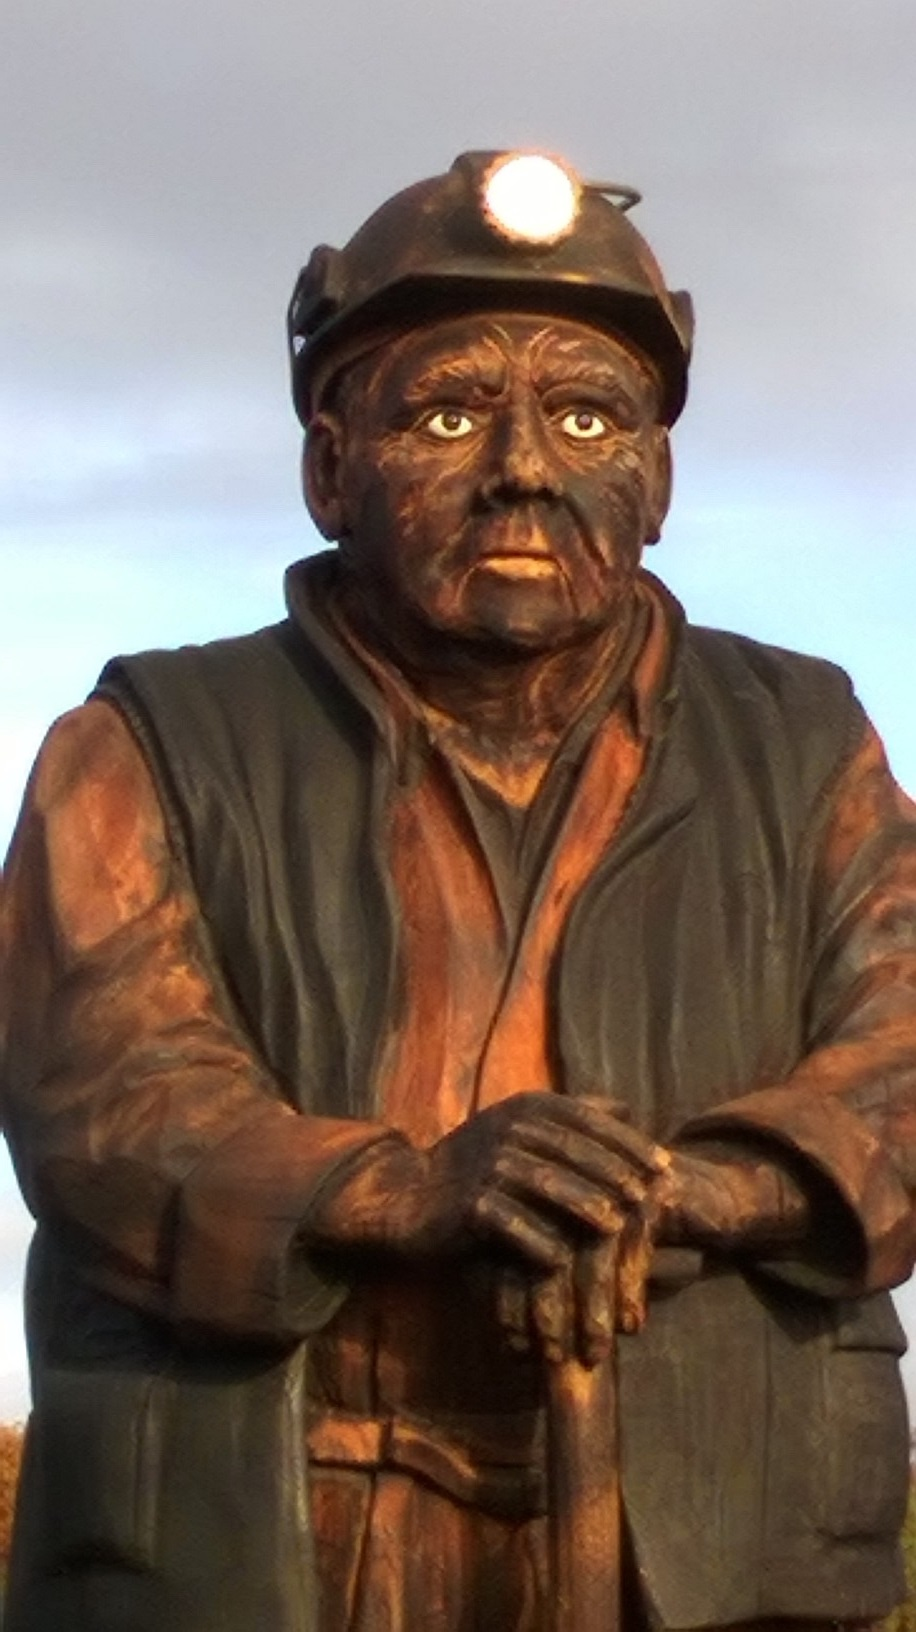 The Keeper of the Collieries is a nine foot tall, one and a half tonnes wooden statue at the Spirit of Llynfi Woodland site